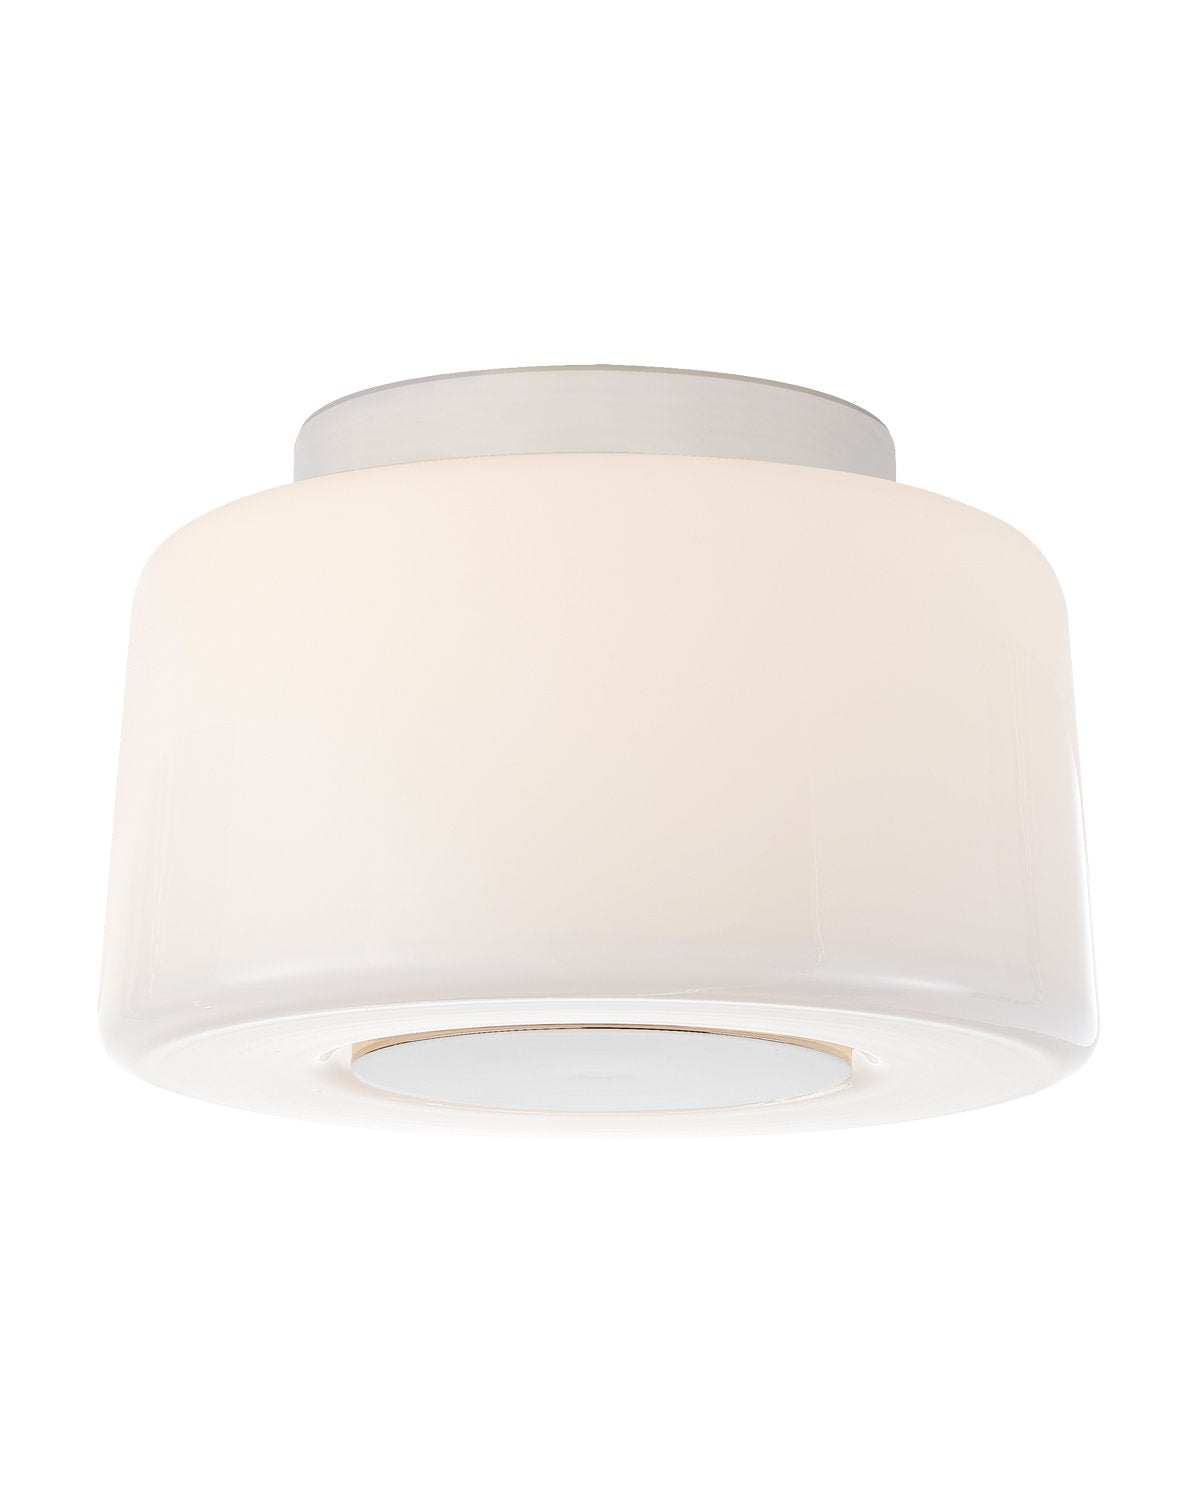 Acme Flush Mount